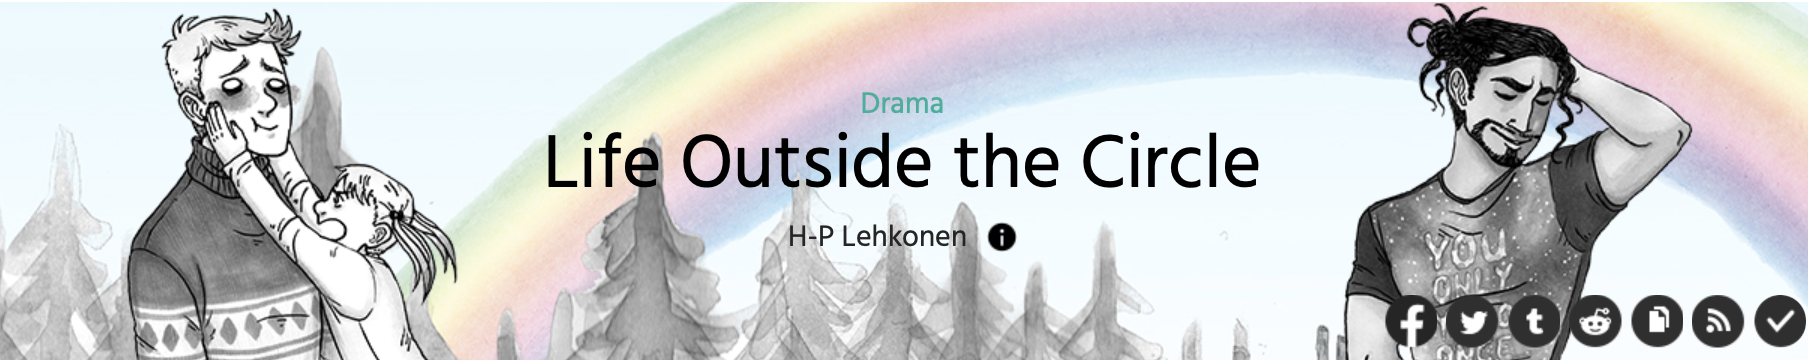 The cover image of Life Outside the Circle by H-P Lehkonen on Webtoons.